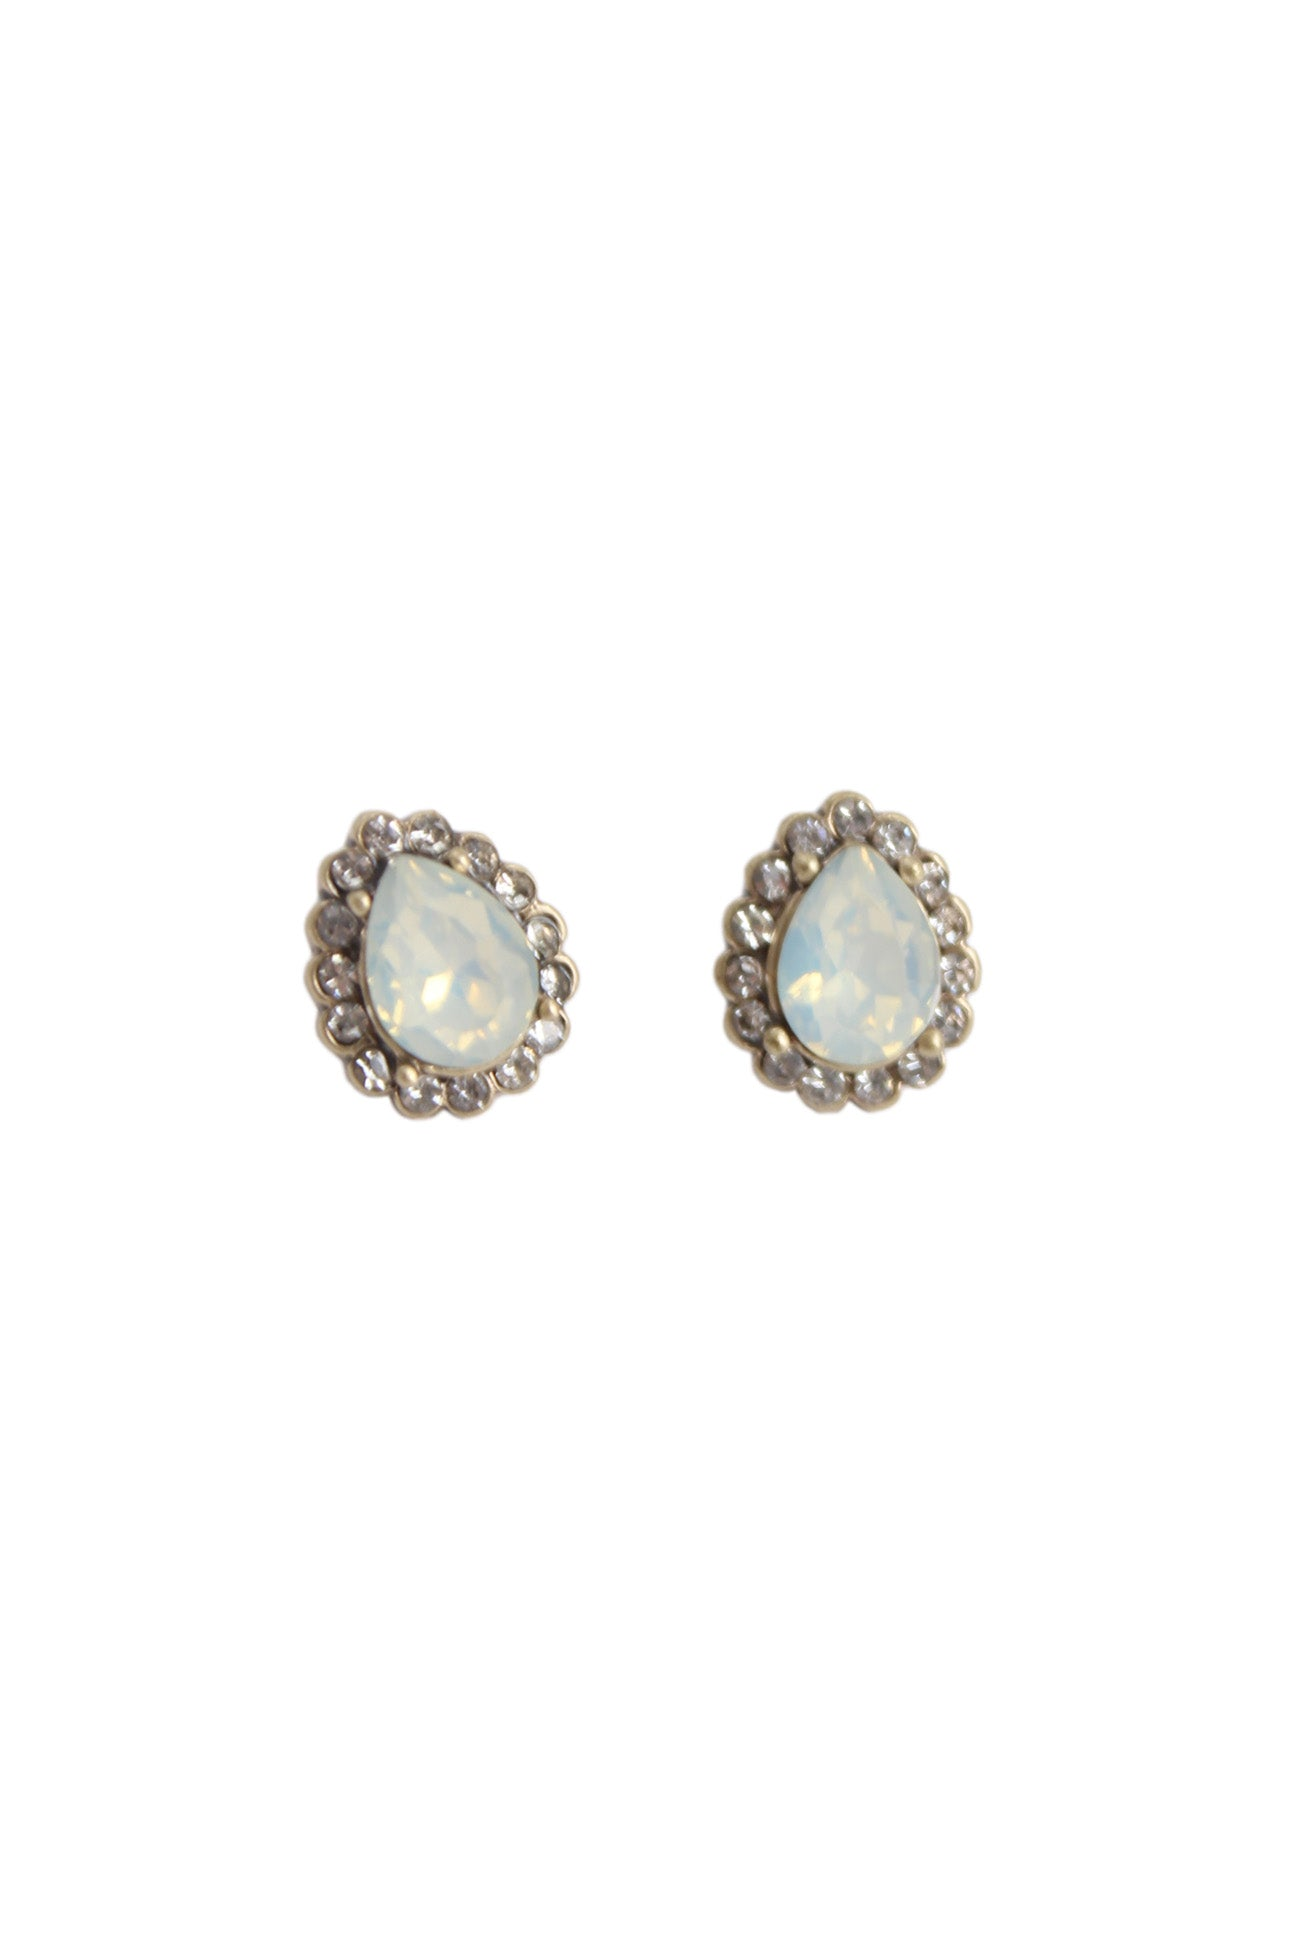 unlabeled ice blue pear shaped gemstone earrings. featuring diamantes surrounding stone and pale gold metal hardware. with post back.